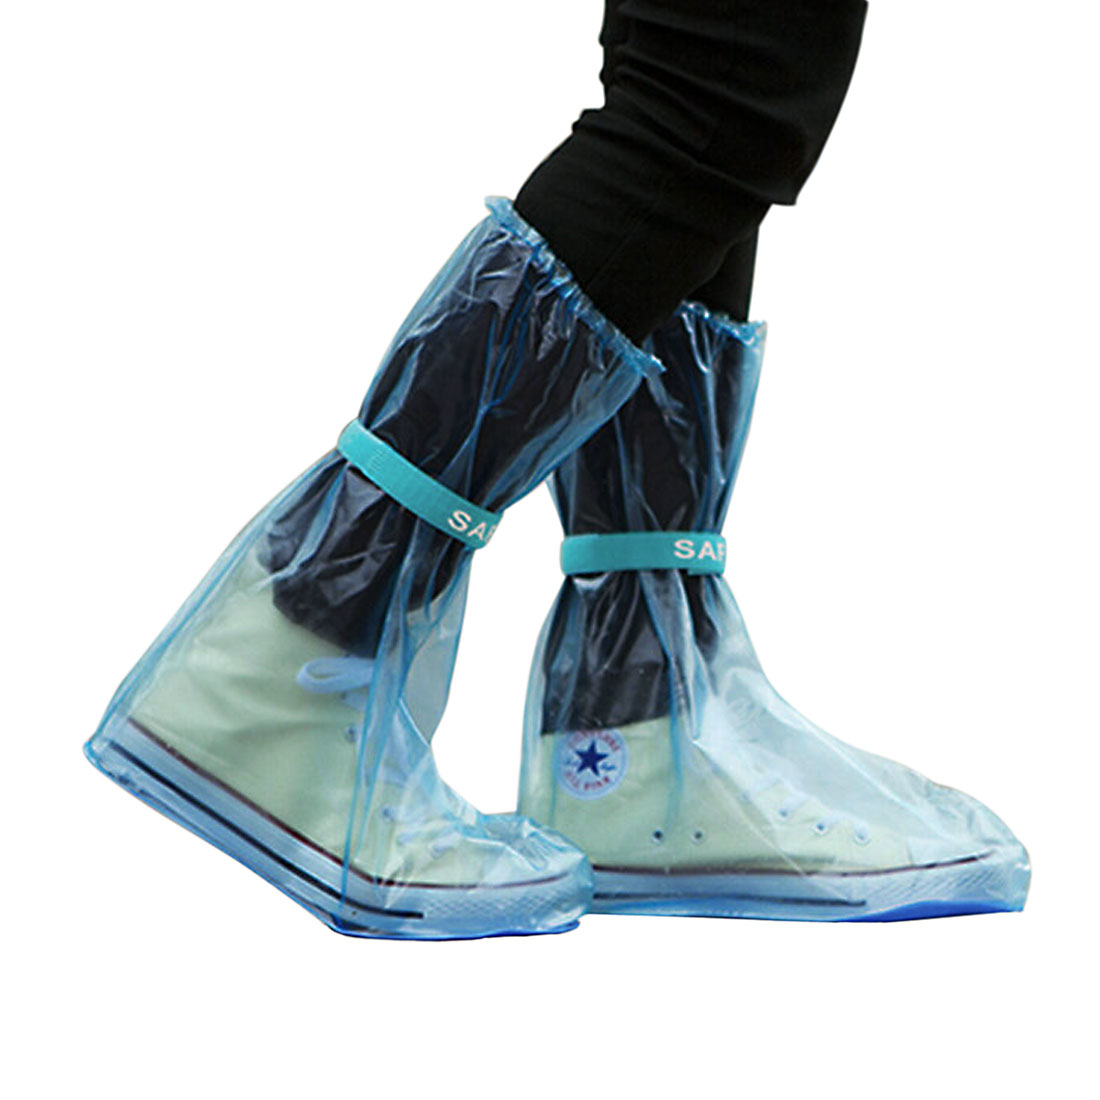 1 Pair Reusable Nonslip Rain Boots Shoes Cover Guard Overshoes Blue Size L by Unique-Bargains